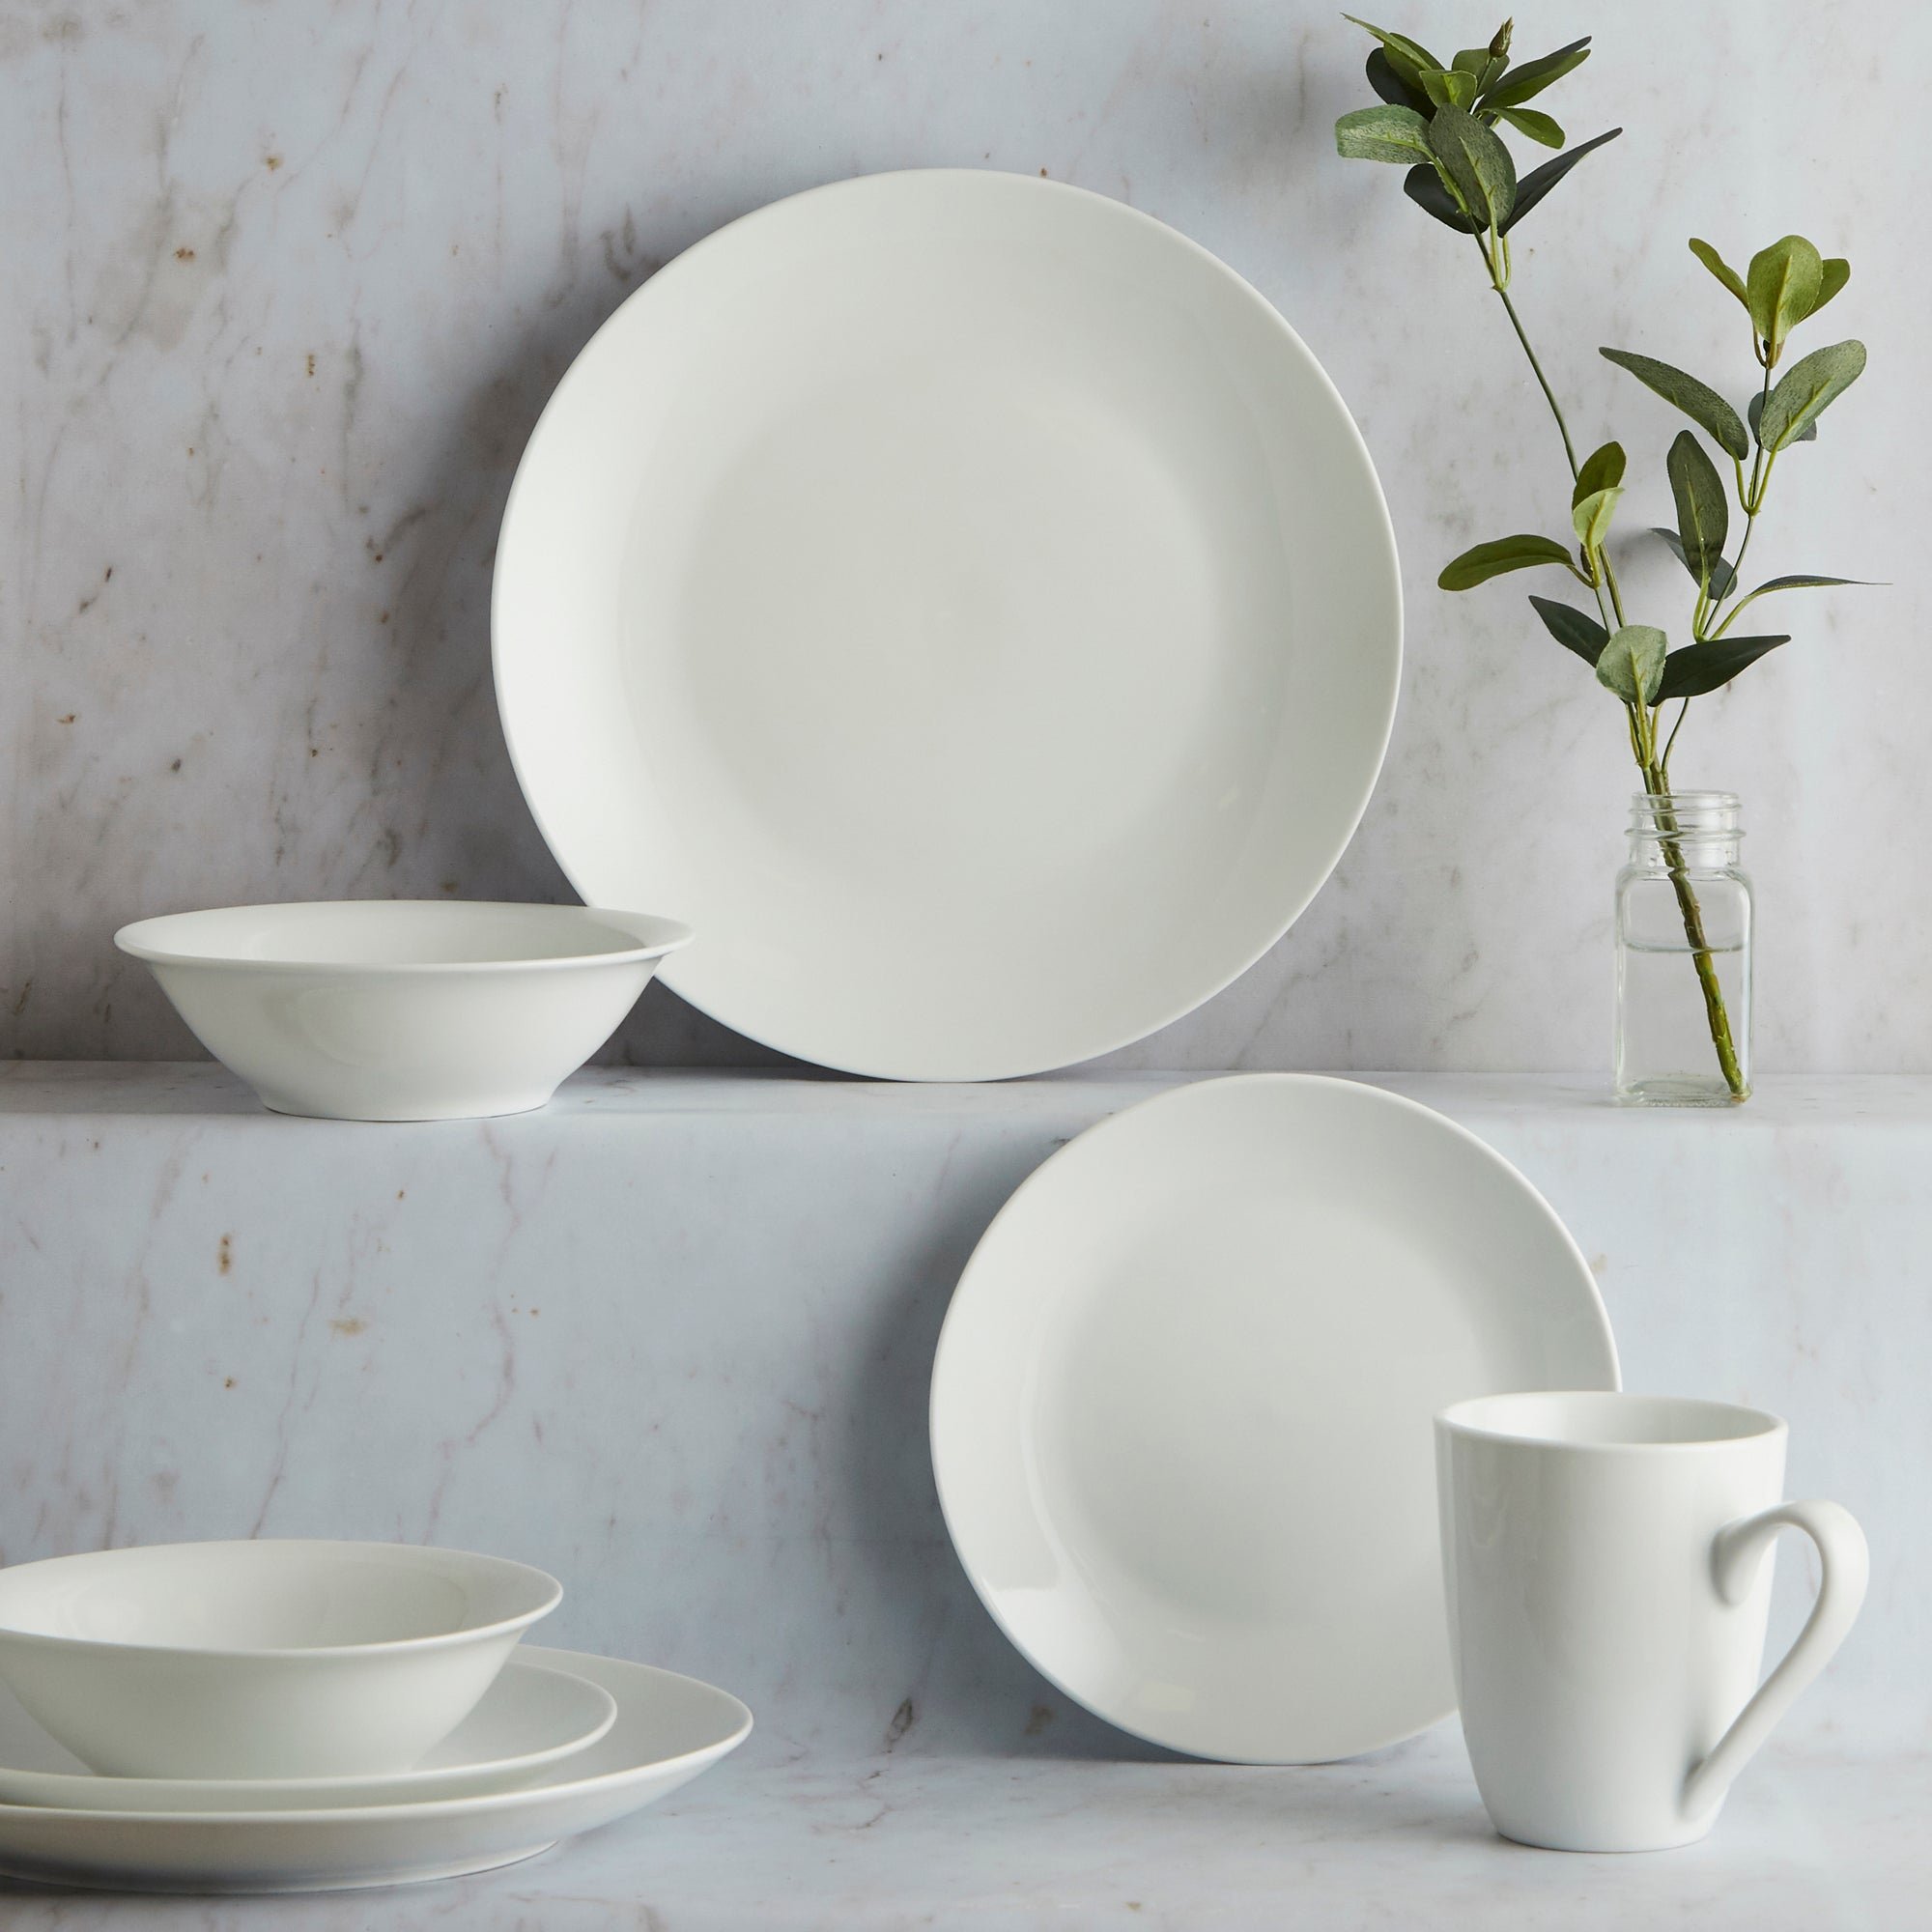 Purity Collection 16 Piece Dinner Set